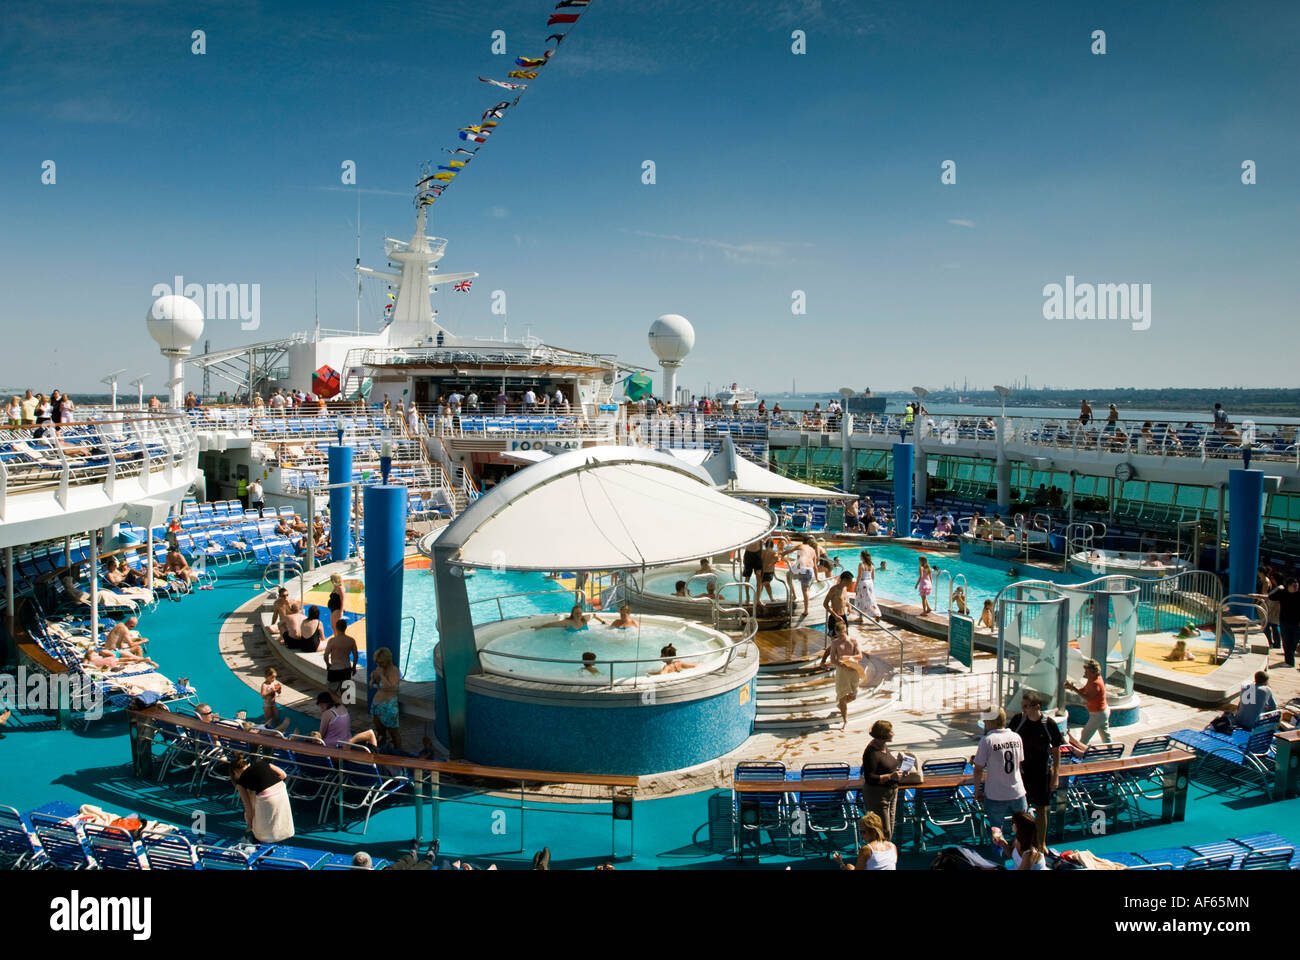 The massive  seawater swimming pool area on a cruise liner - Stock Image